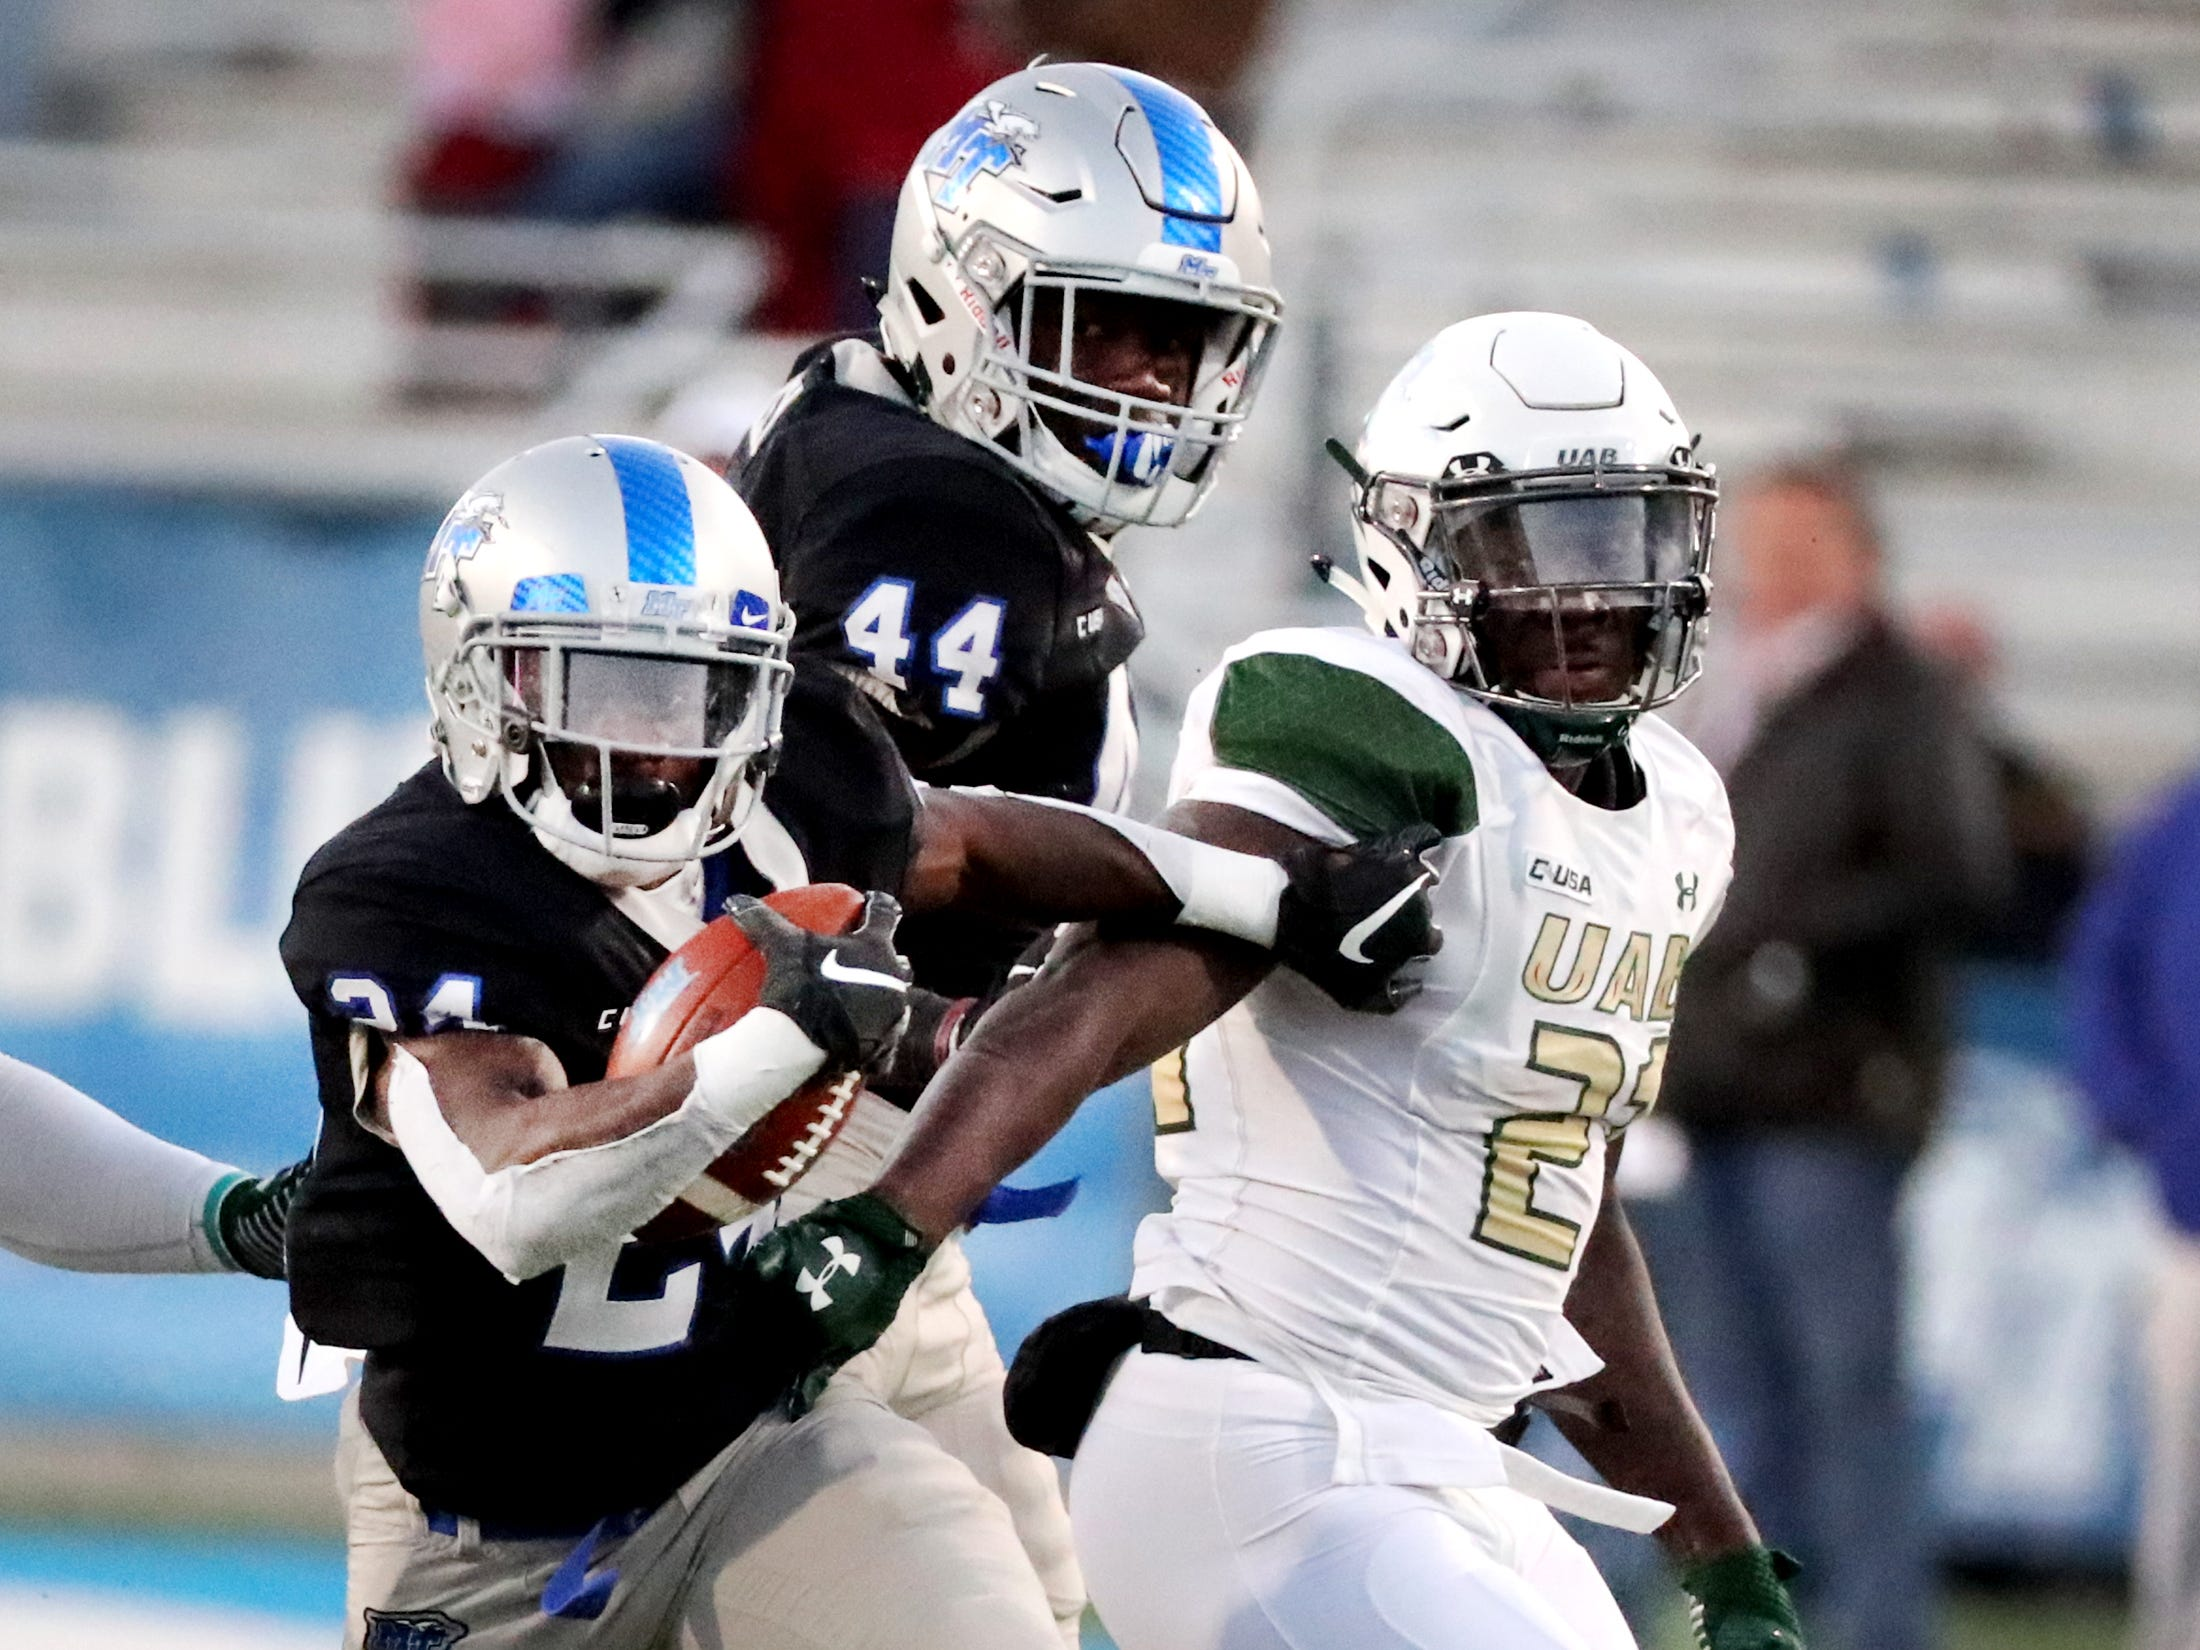 MTSU's Zack Dobson (24) runs the ball in for a touchdown against UAB at MTSU on Saturday, Nov. 24, 2018.